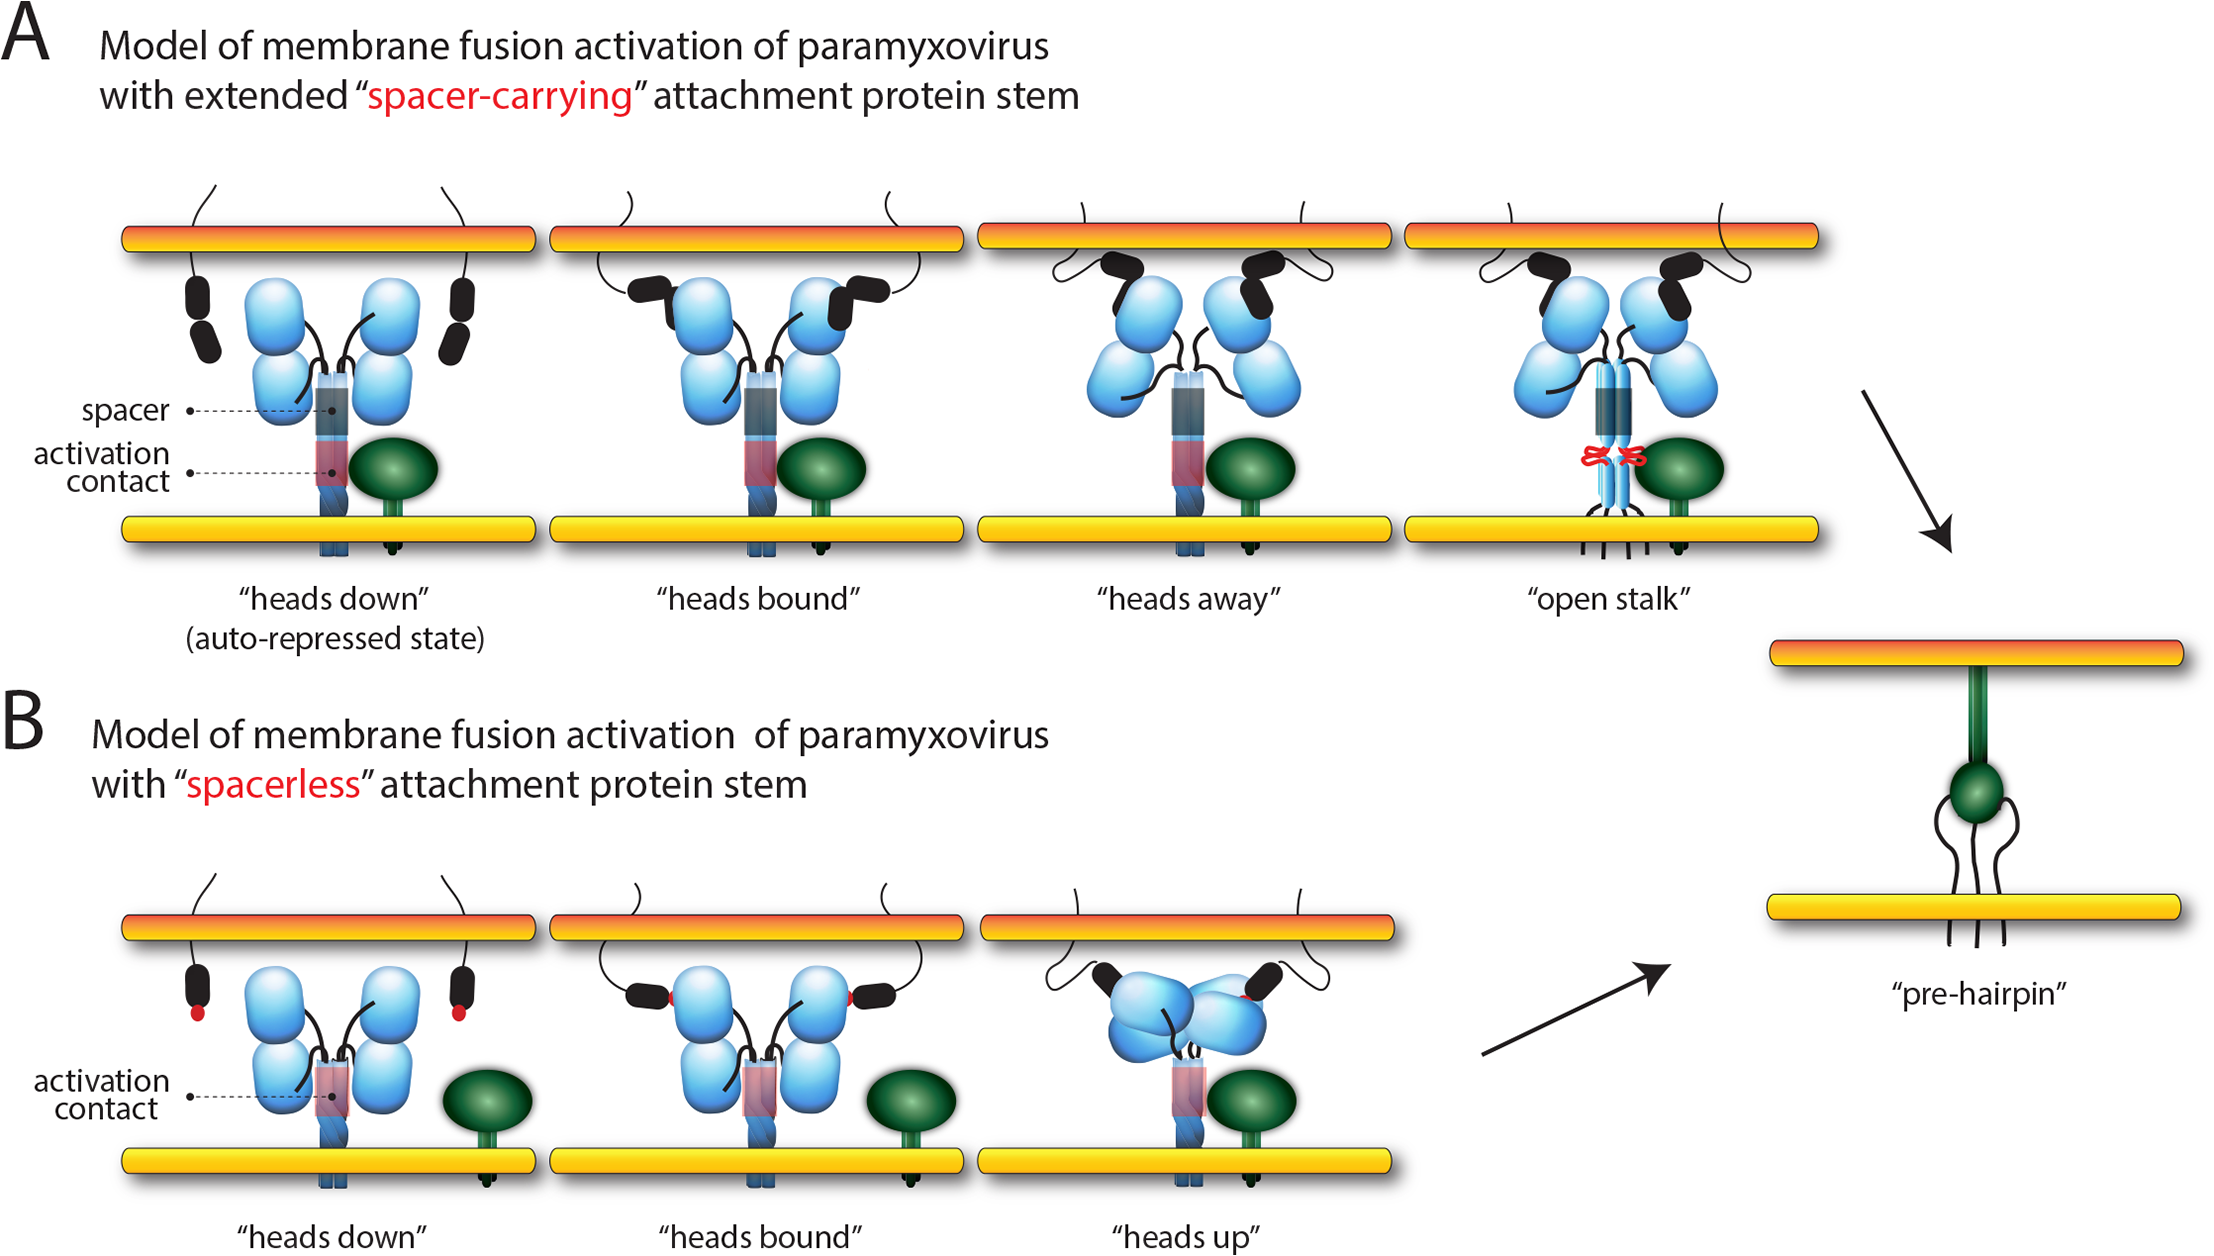 Models of paramyxovirus membrane fusion activation.